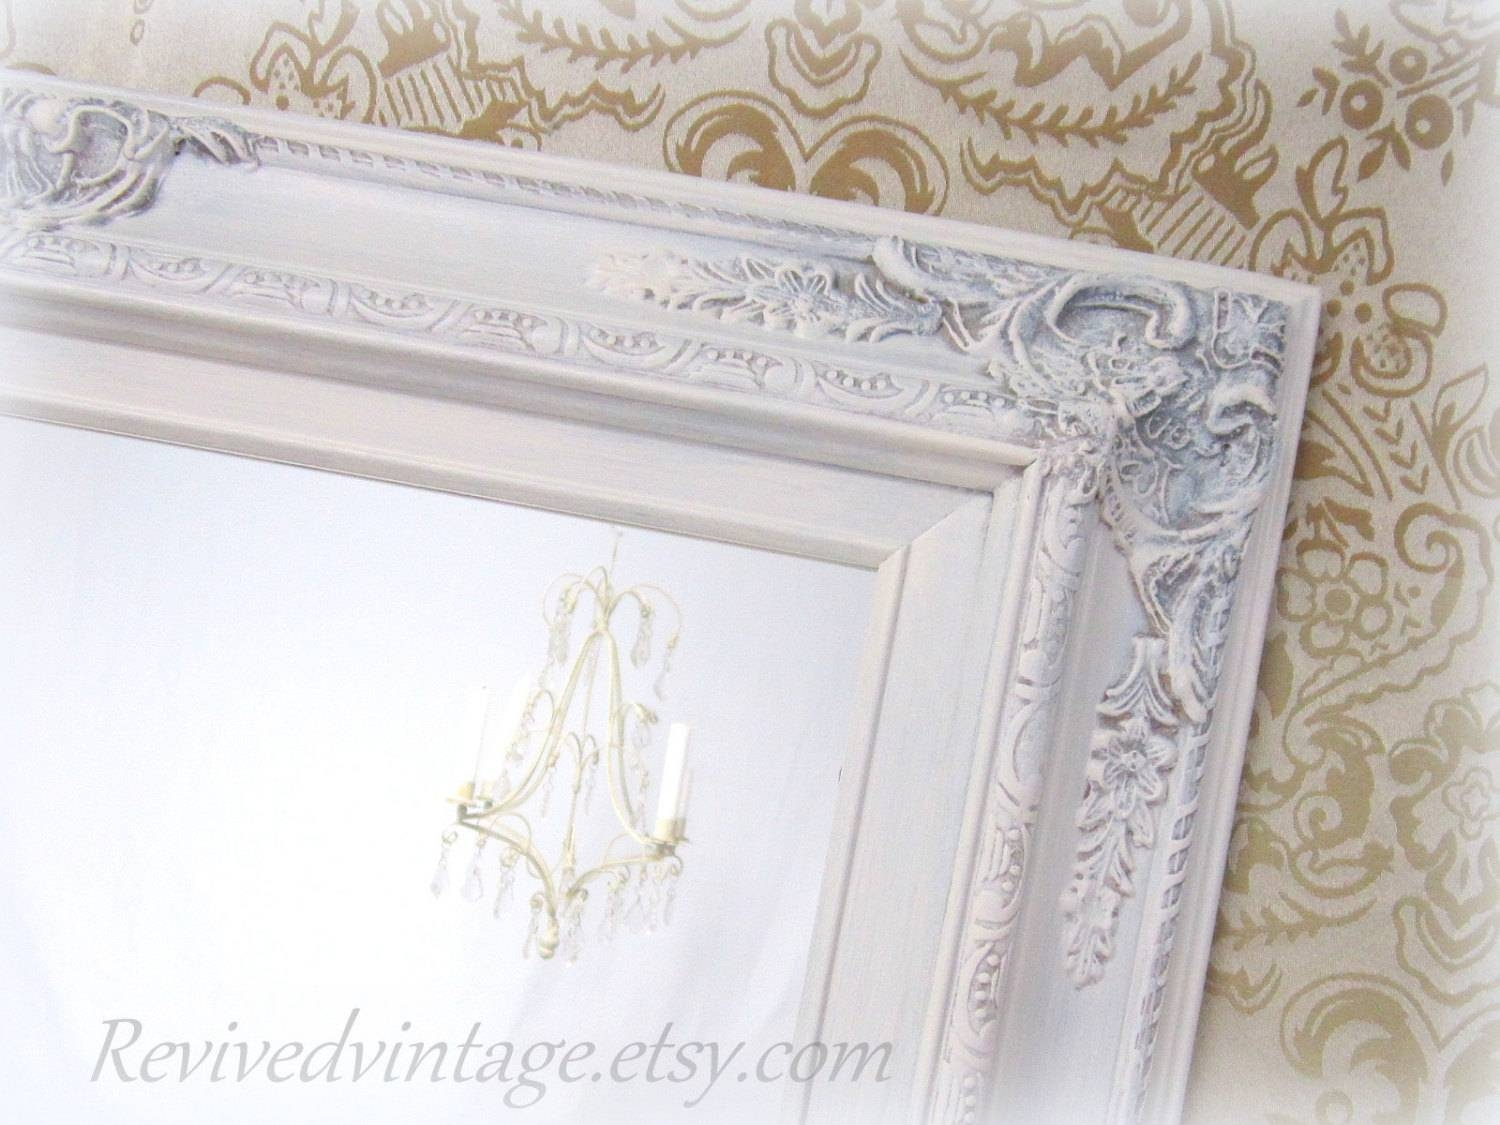 Shabby Chic Mirrors For Sale Baroque Framed Mirror pertaining to Shabby Chic Large Wall Mirrors (Image 17 of 25)